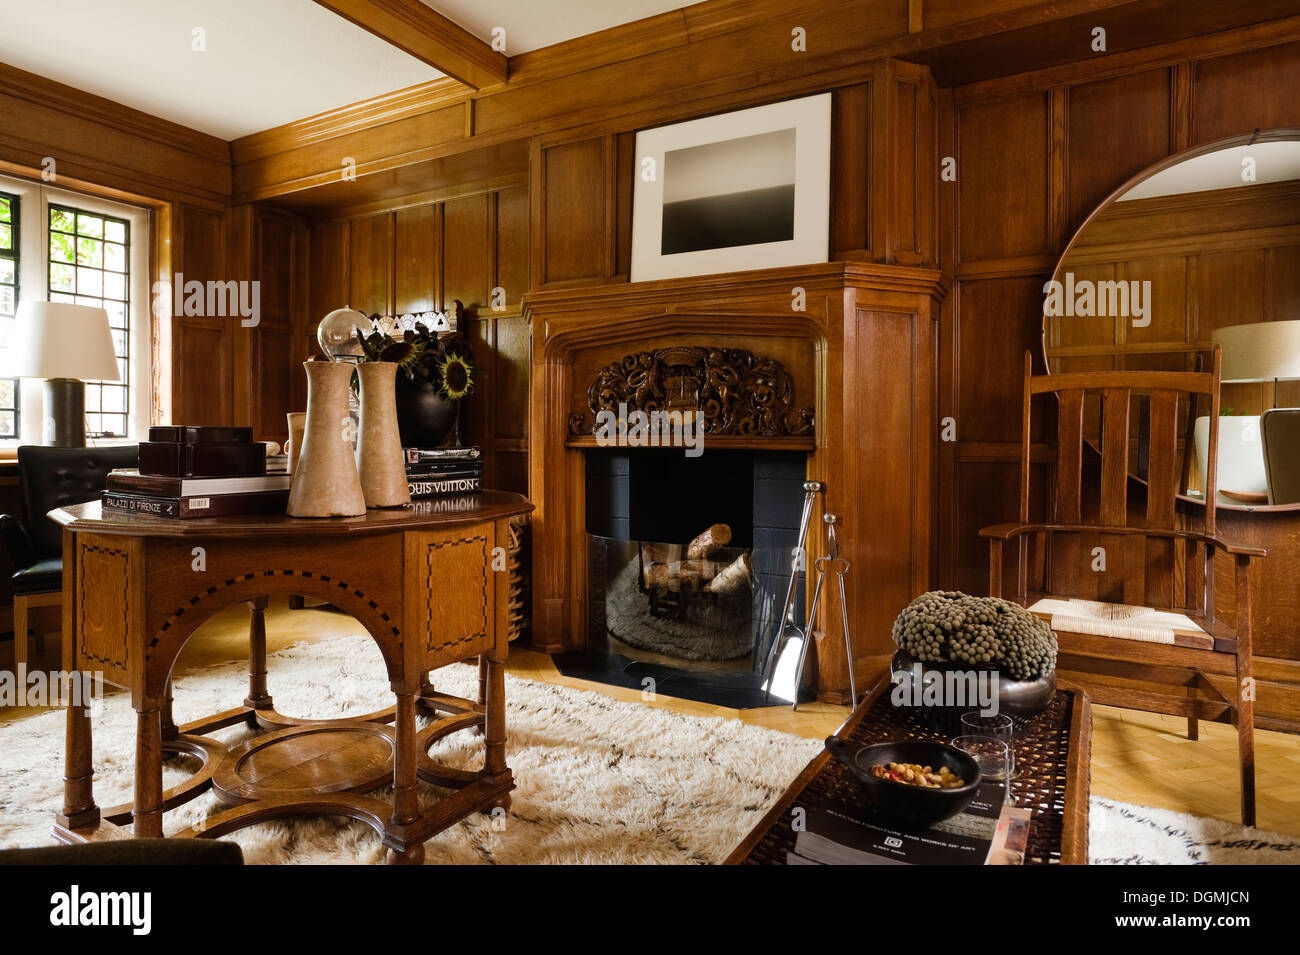 Arts And Crafts Furniture Interior High Resolution Stock Photography And Images Alamy